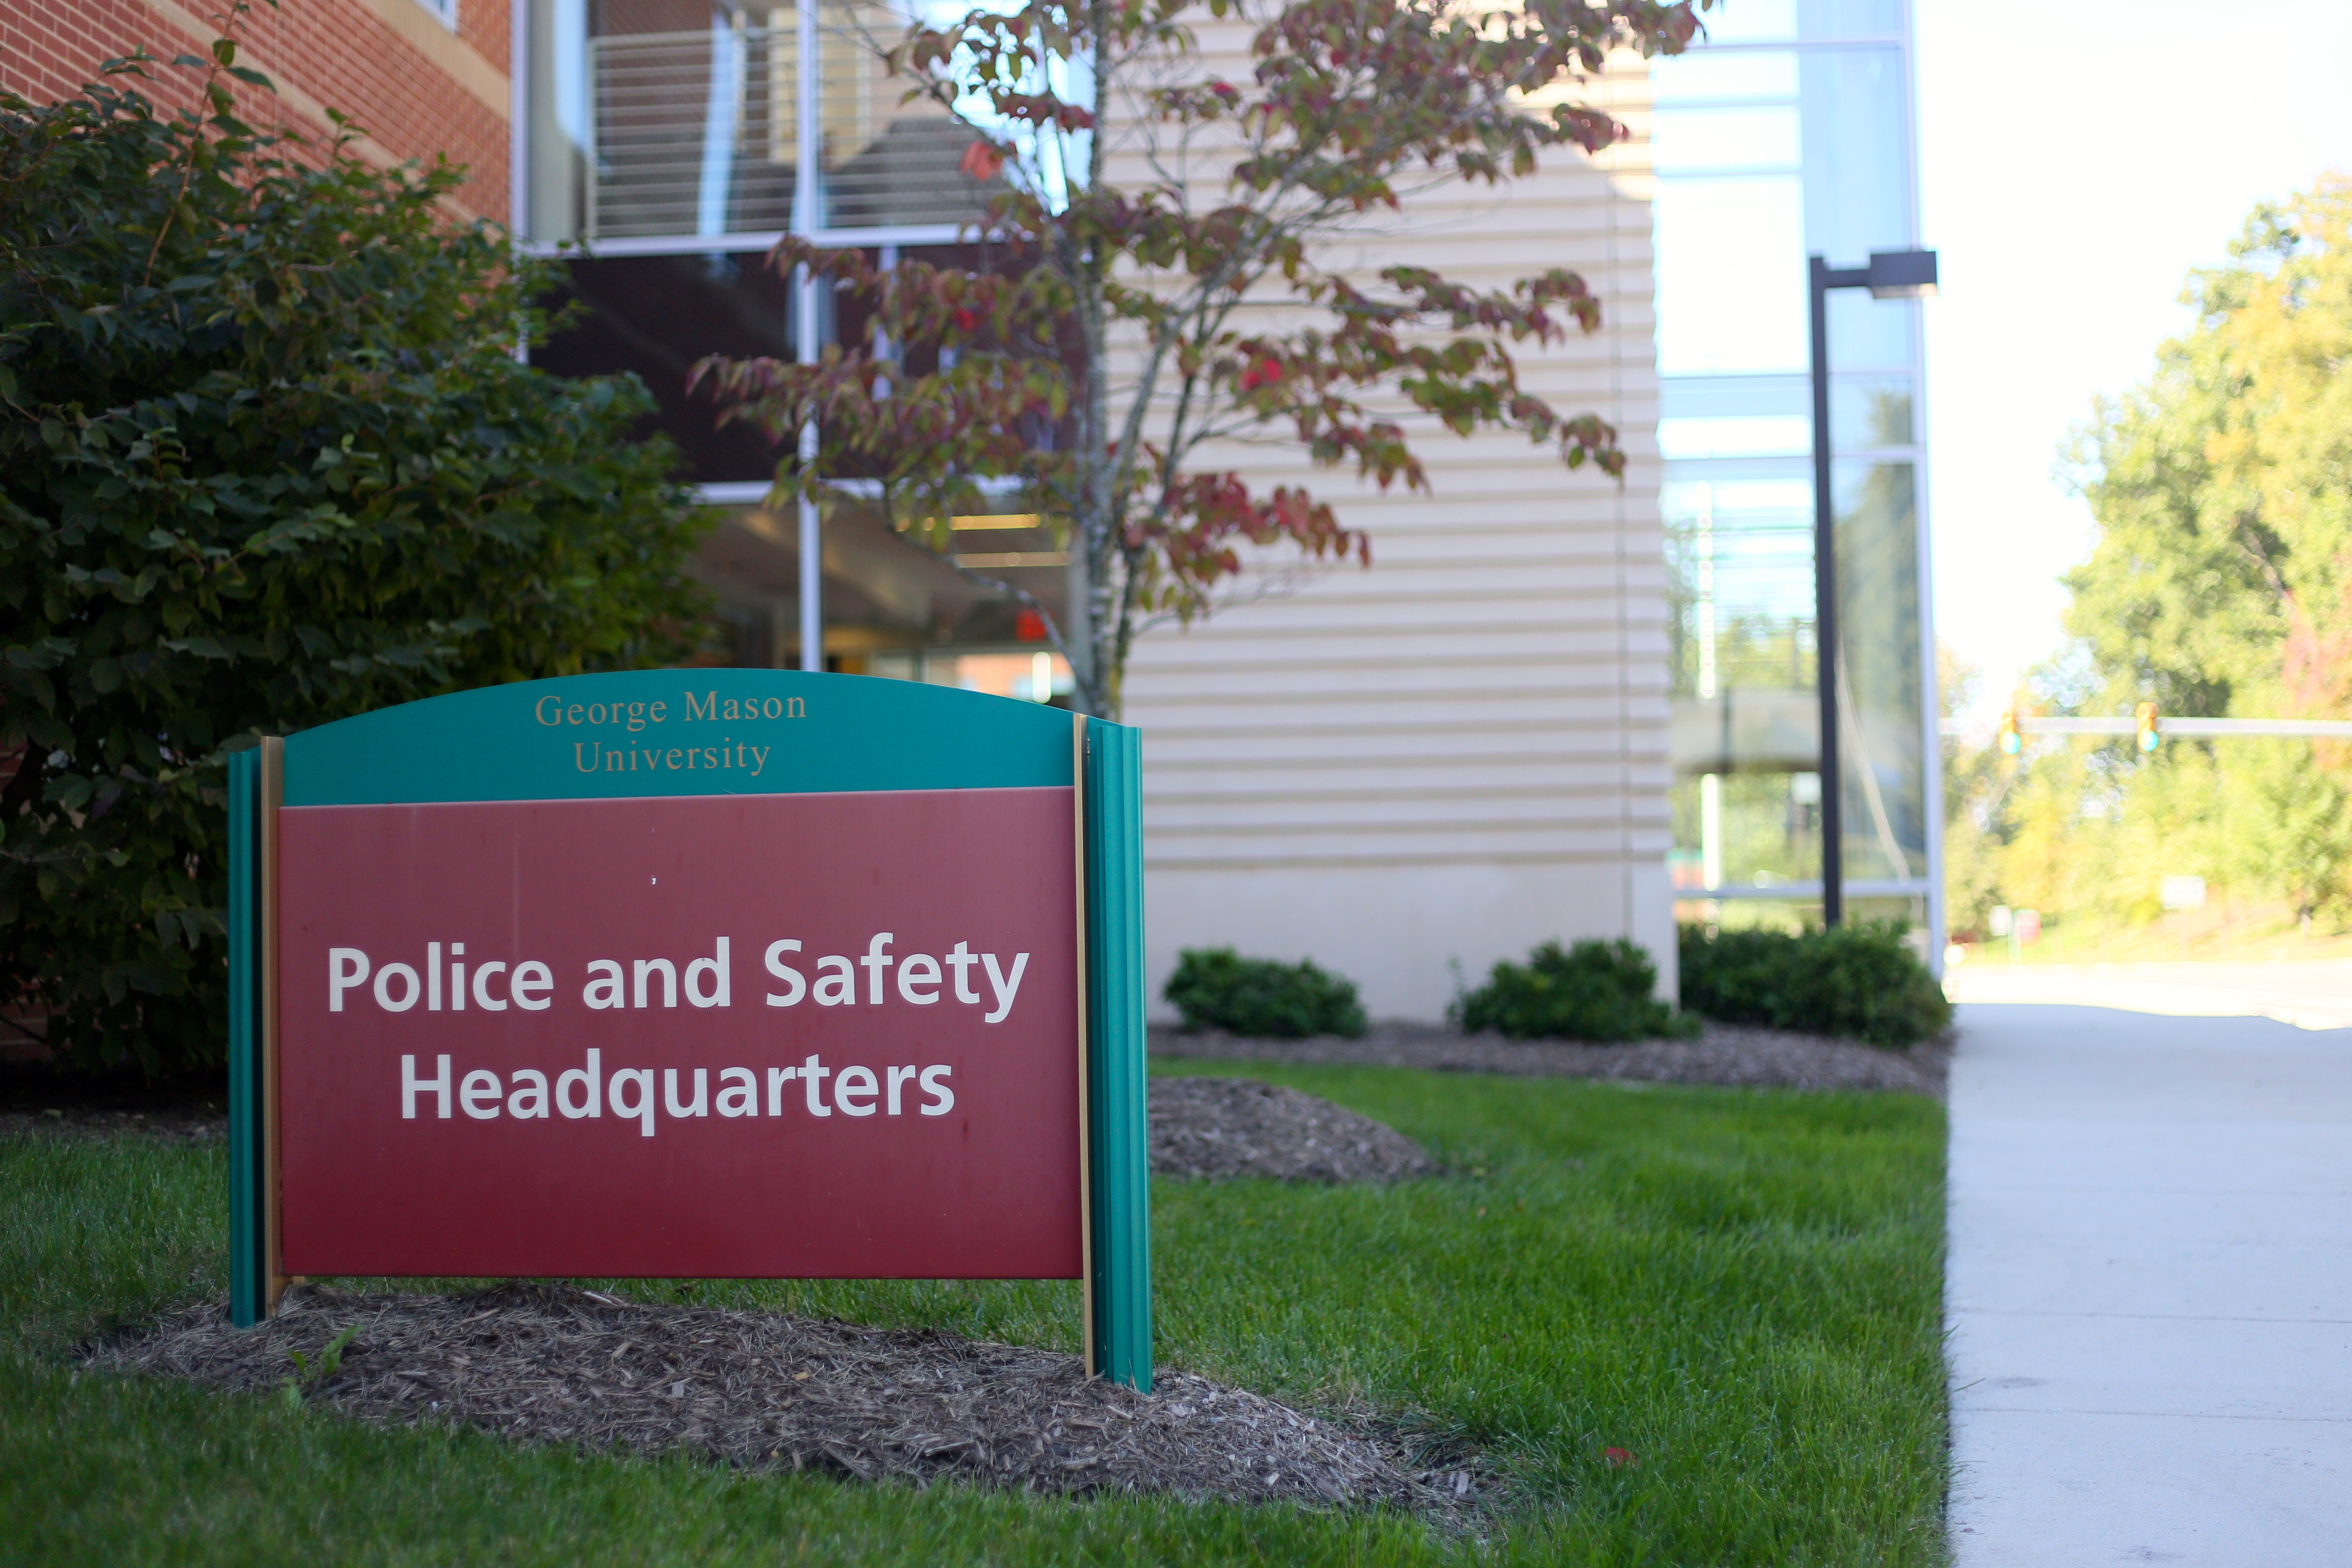 GMU's Police and Safety Headquarters, located right off Campus Drive right behind Rappahannock Parking deck. (Photo credit: Naomi Folta/ IV Estate)